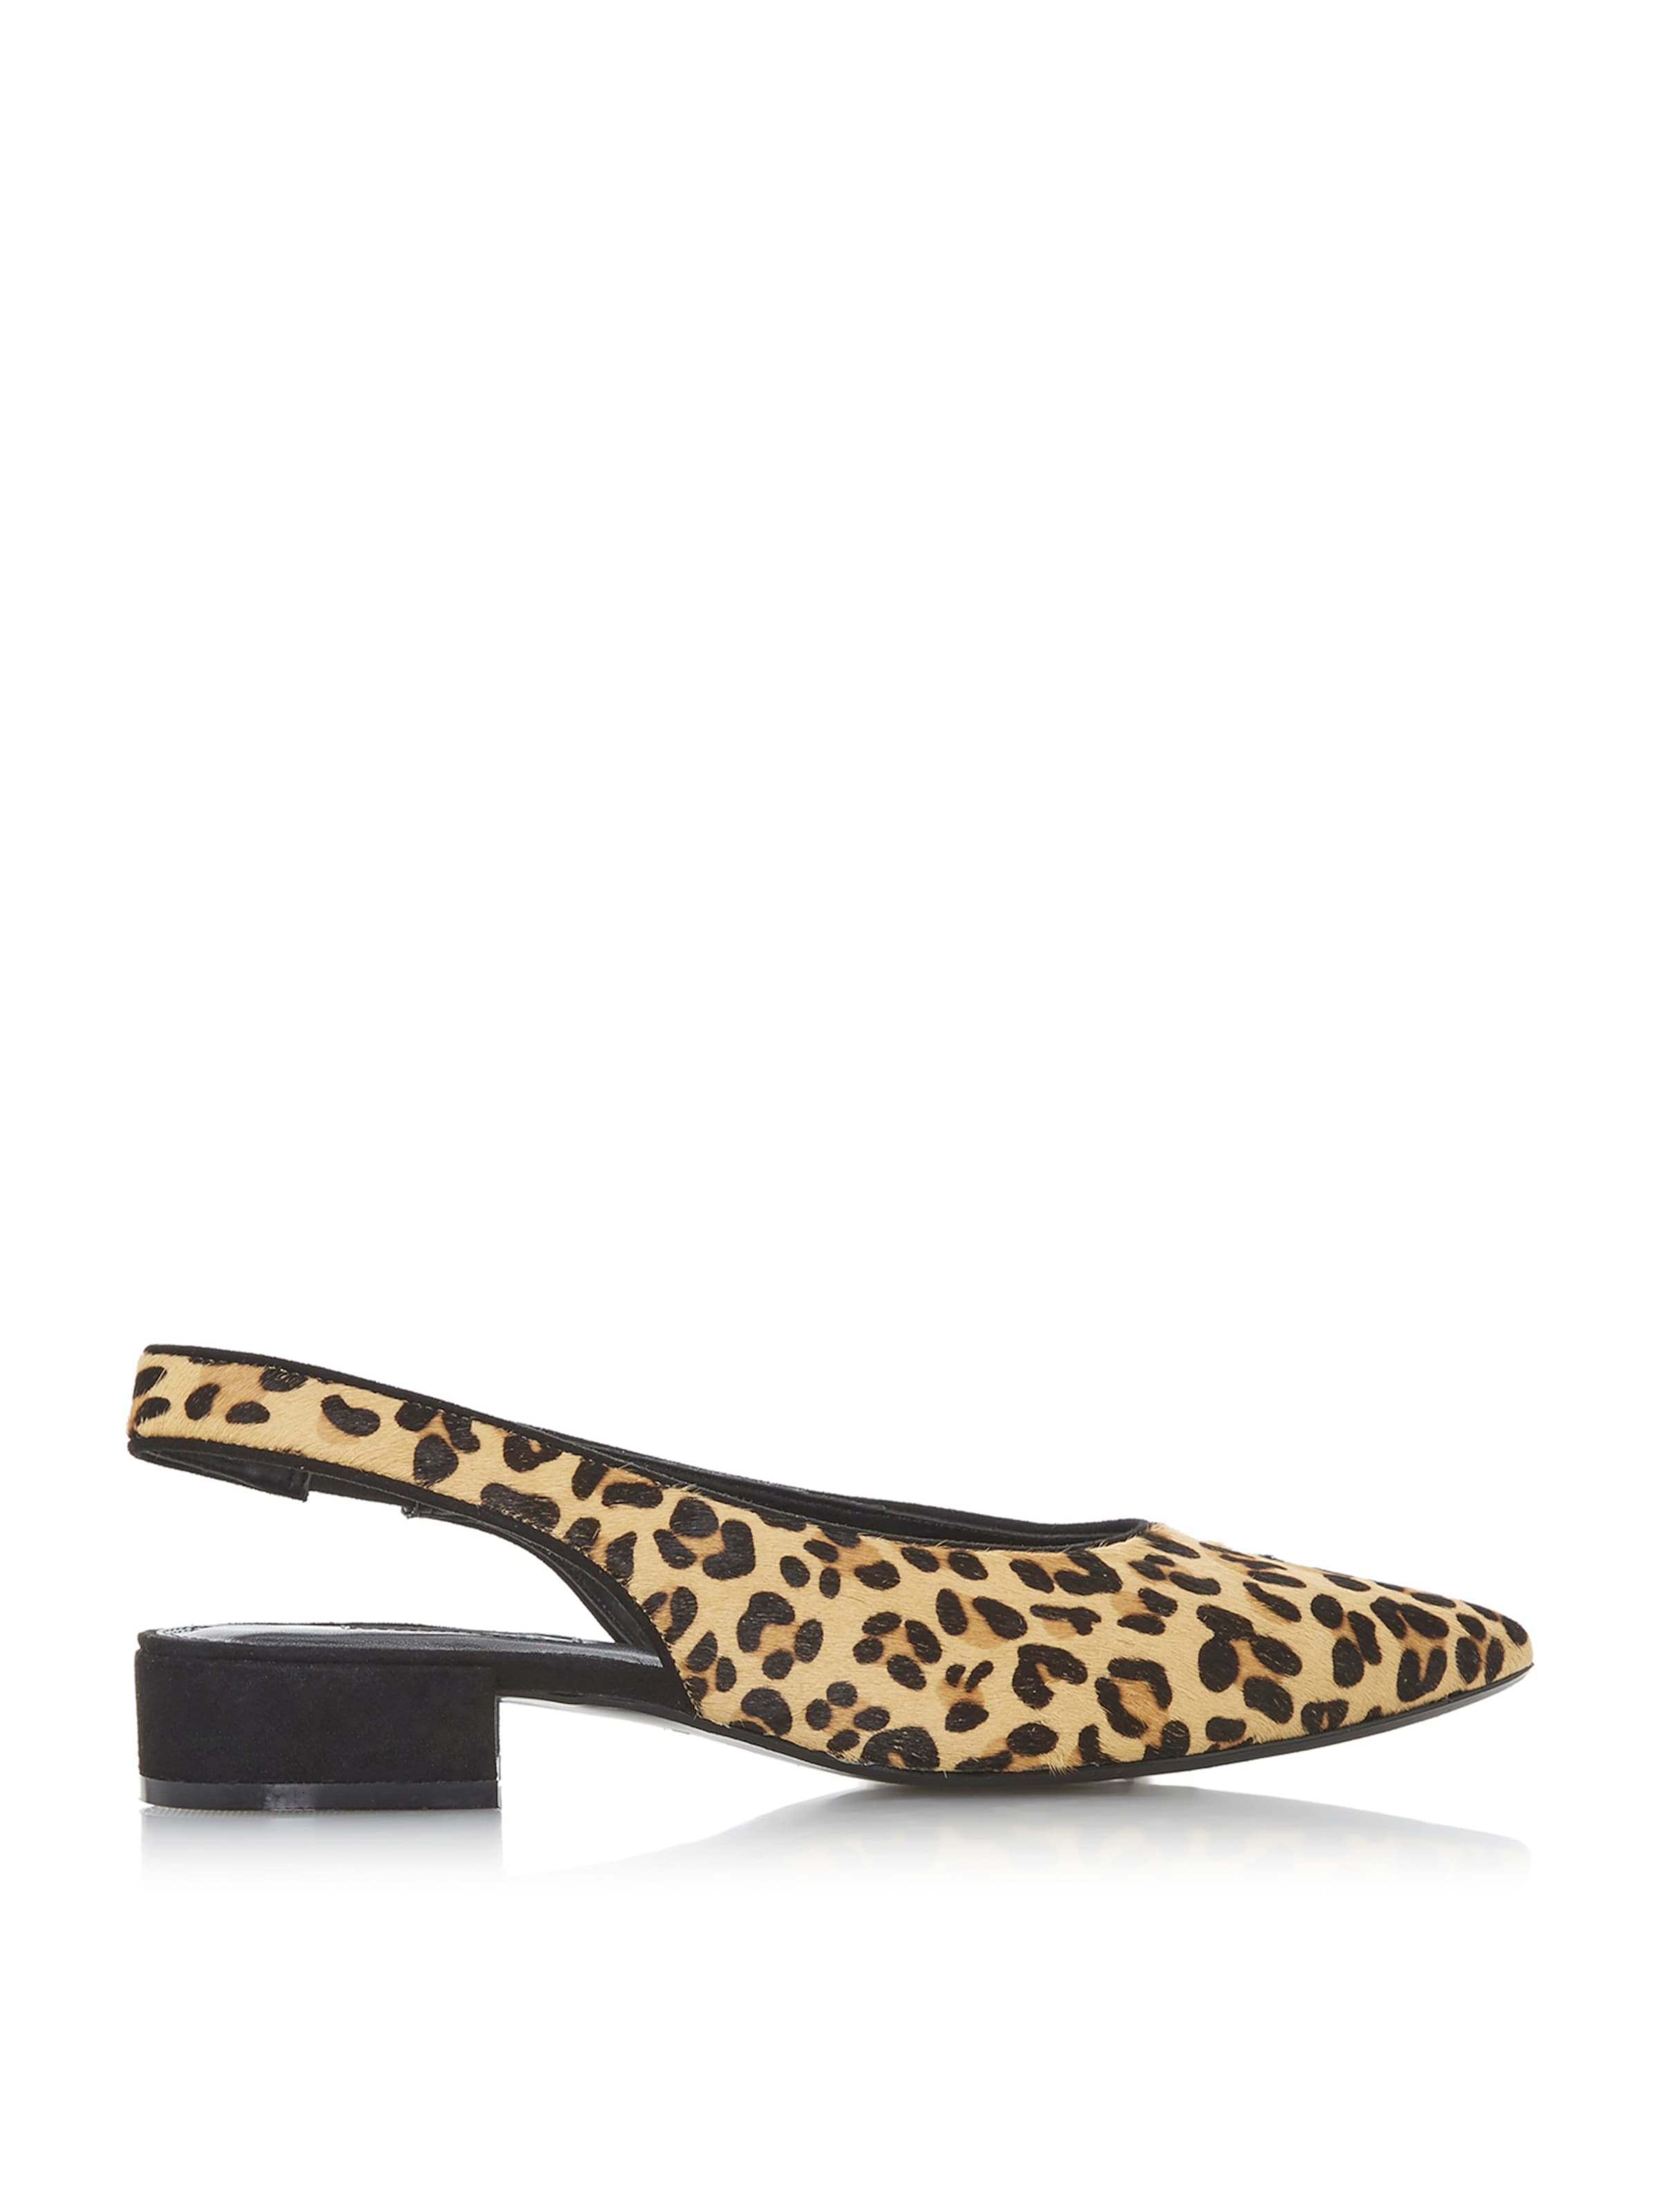 'celene' BraunSchwarz Dune Slipper In London Ybfvy76g